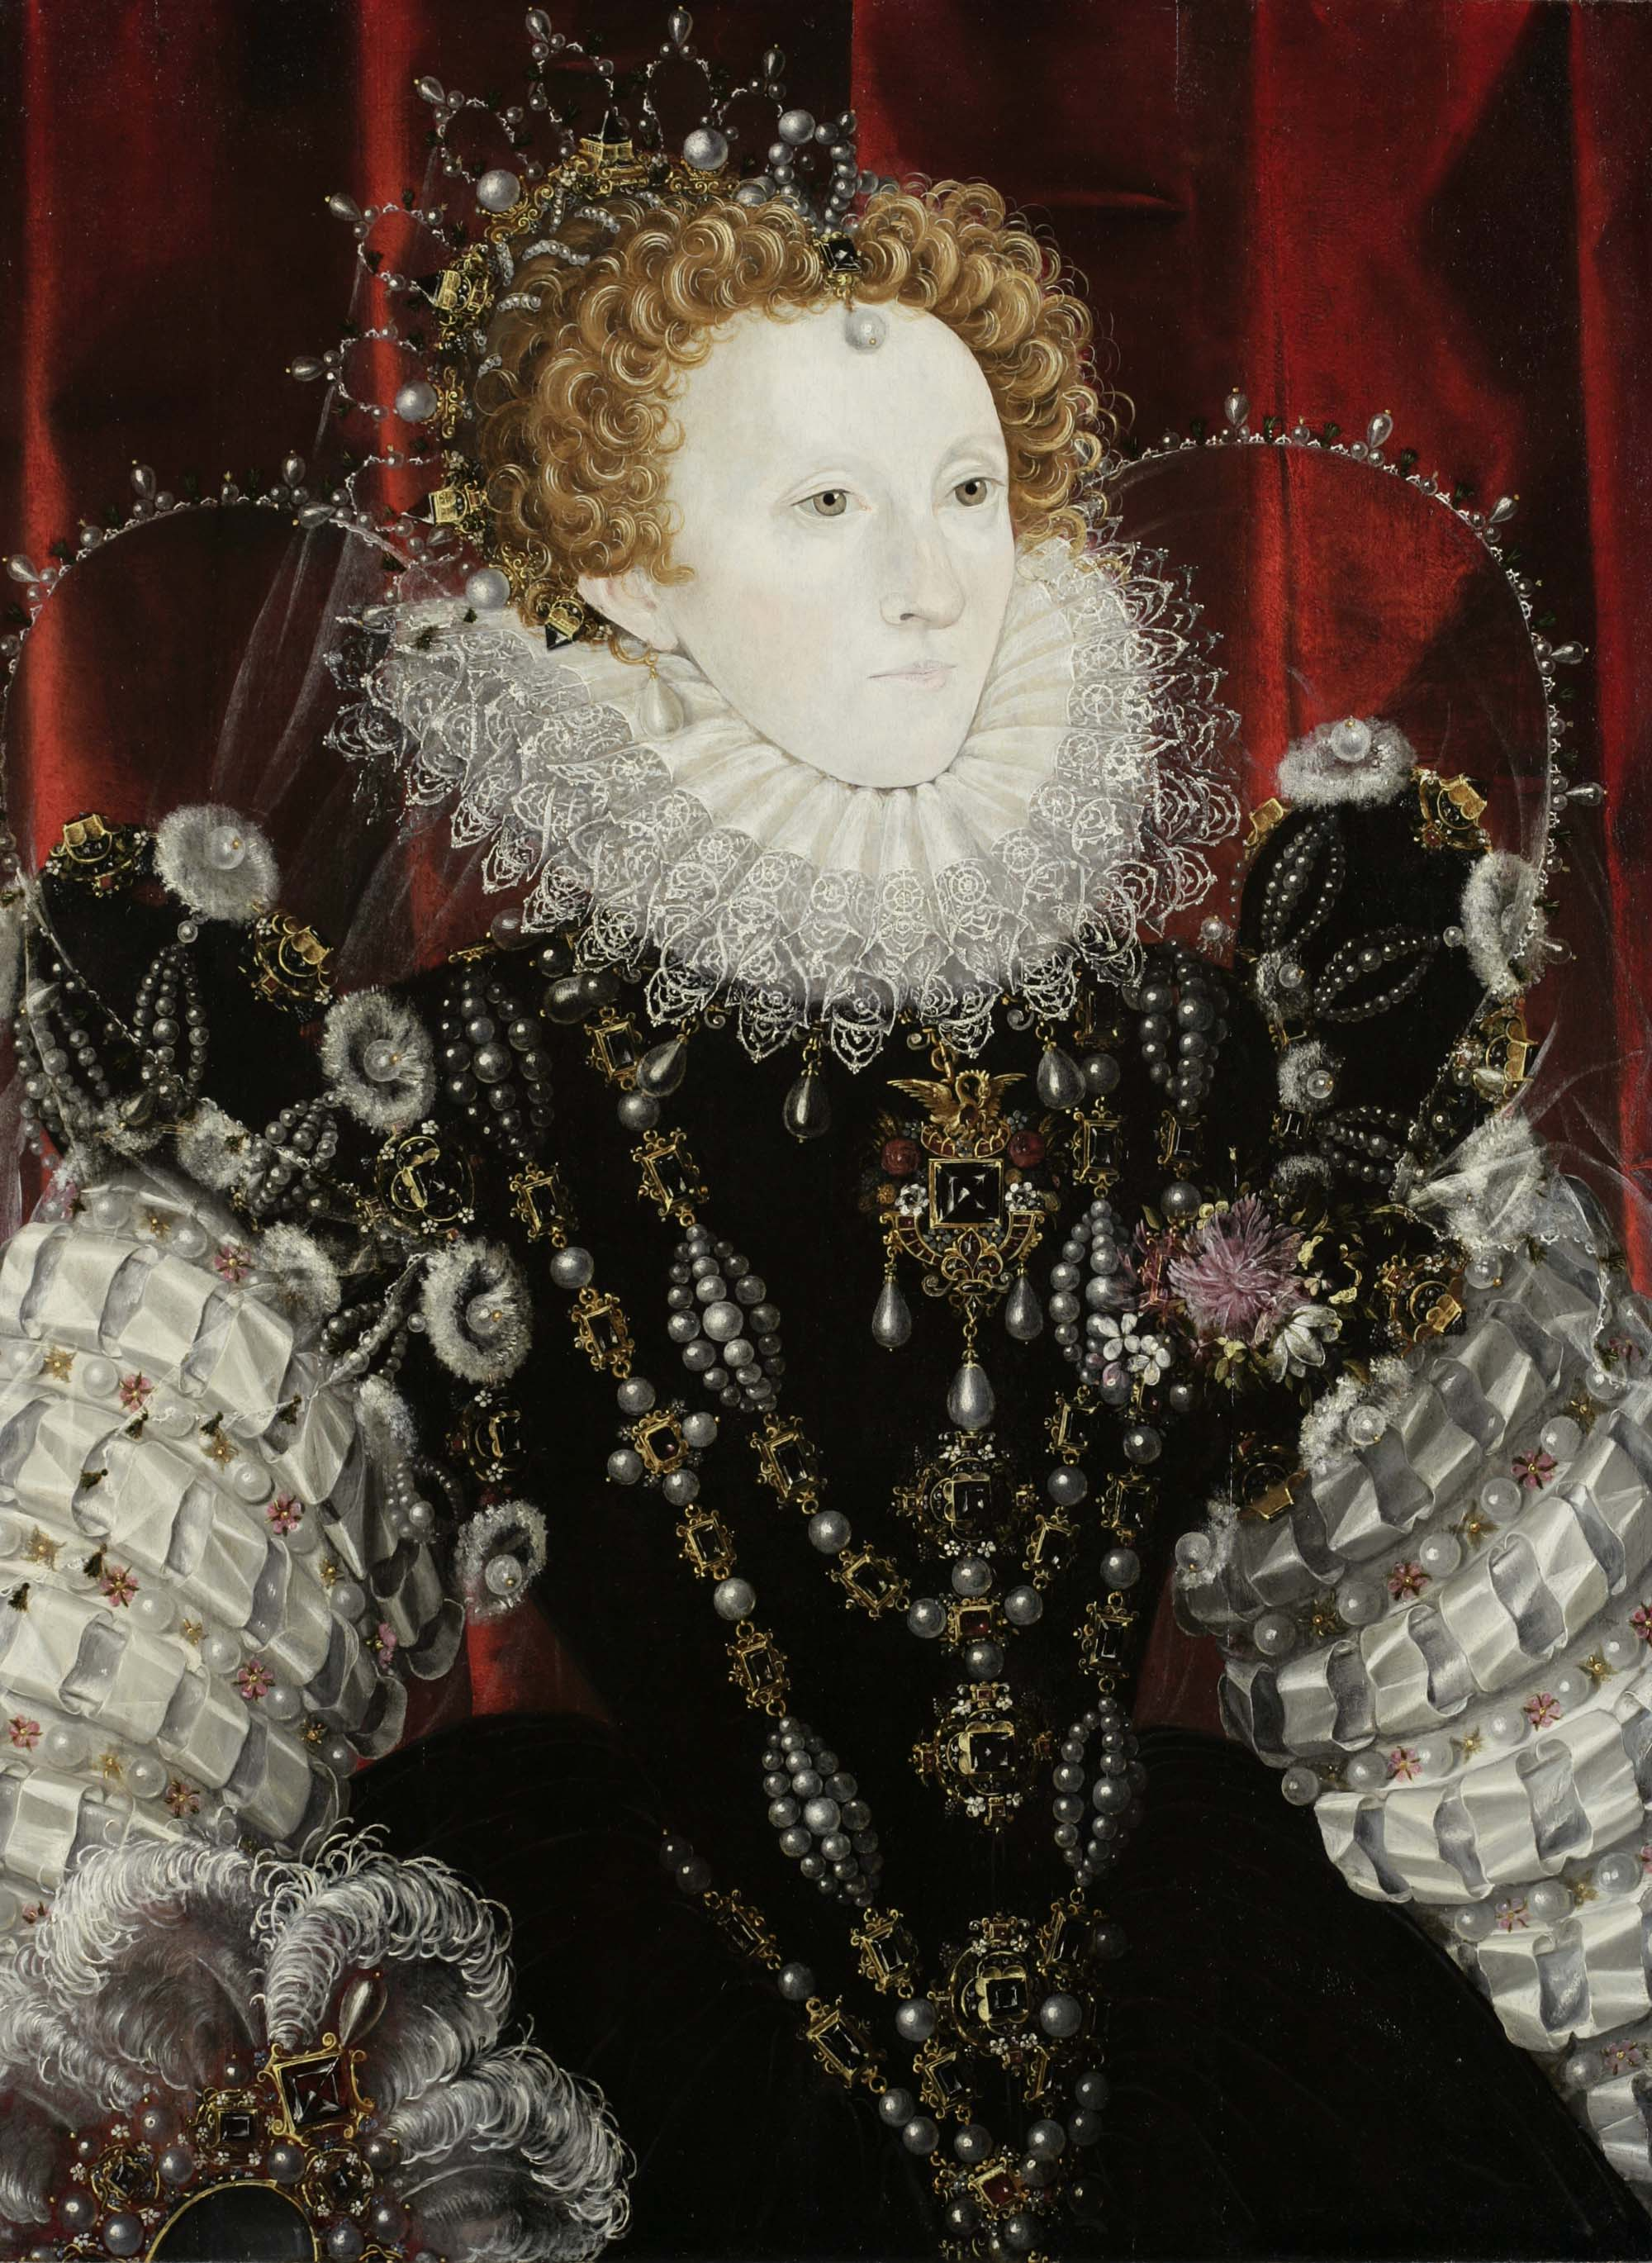 a portrait of Queen Elizabeth I in her royal dress and ruffles